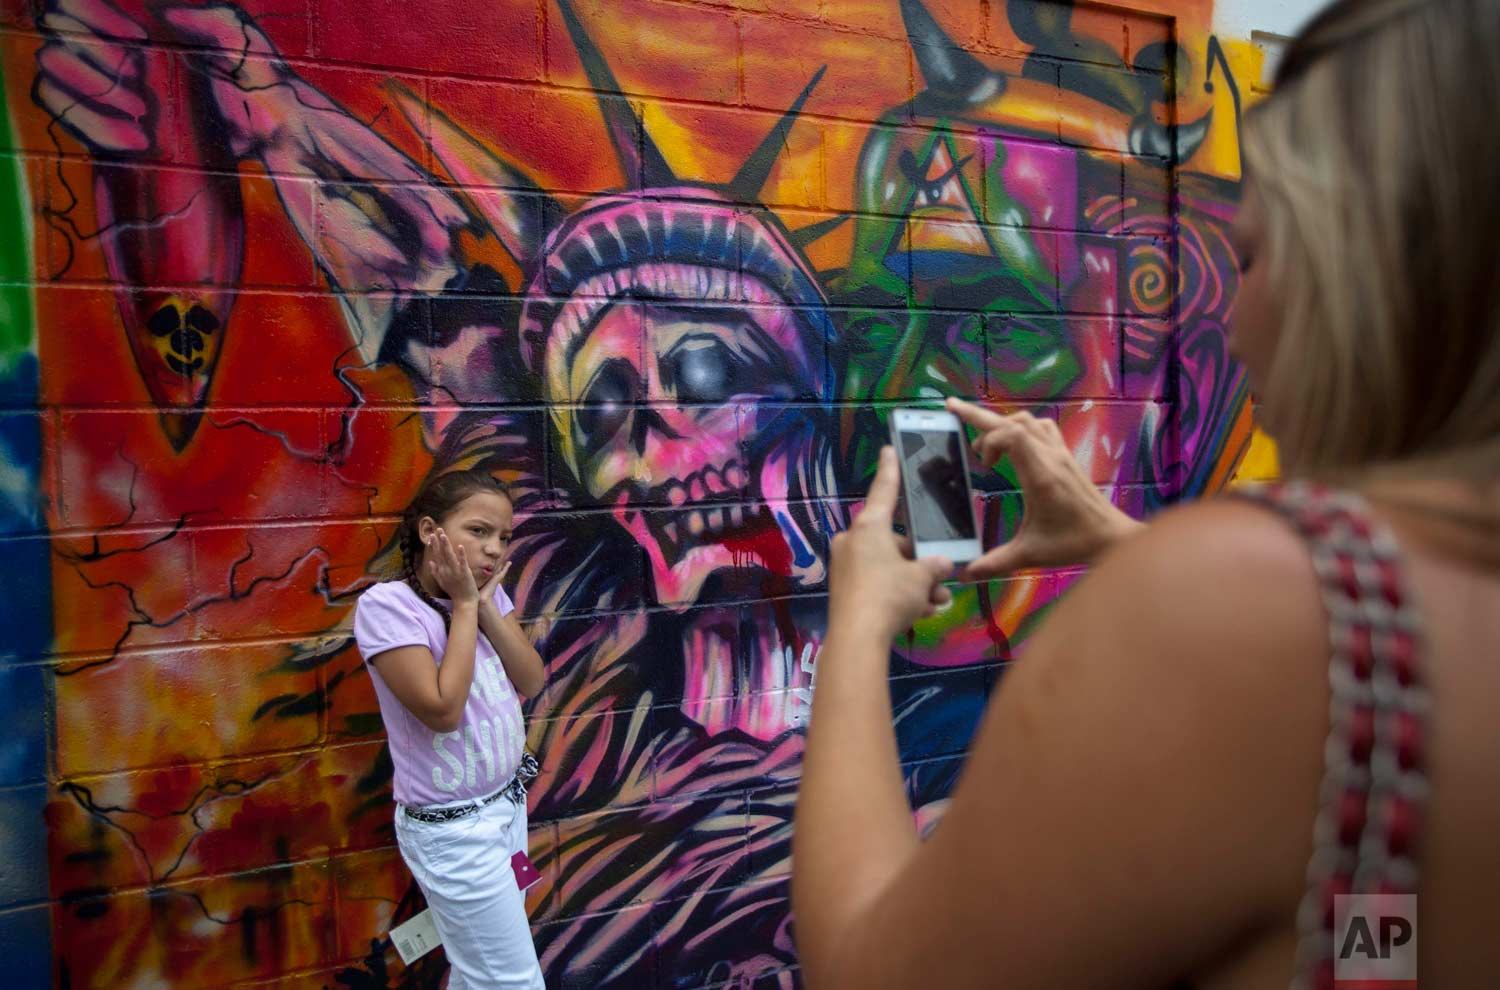 In this March 19, 2015 photo, a girl poses for a picture in front of a mural depicting the statue of liberty as death, at Bolivar square in Caracas, Venezuela. (AP Photo/Ariana Cubillos)